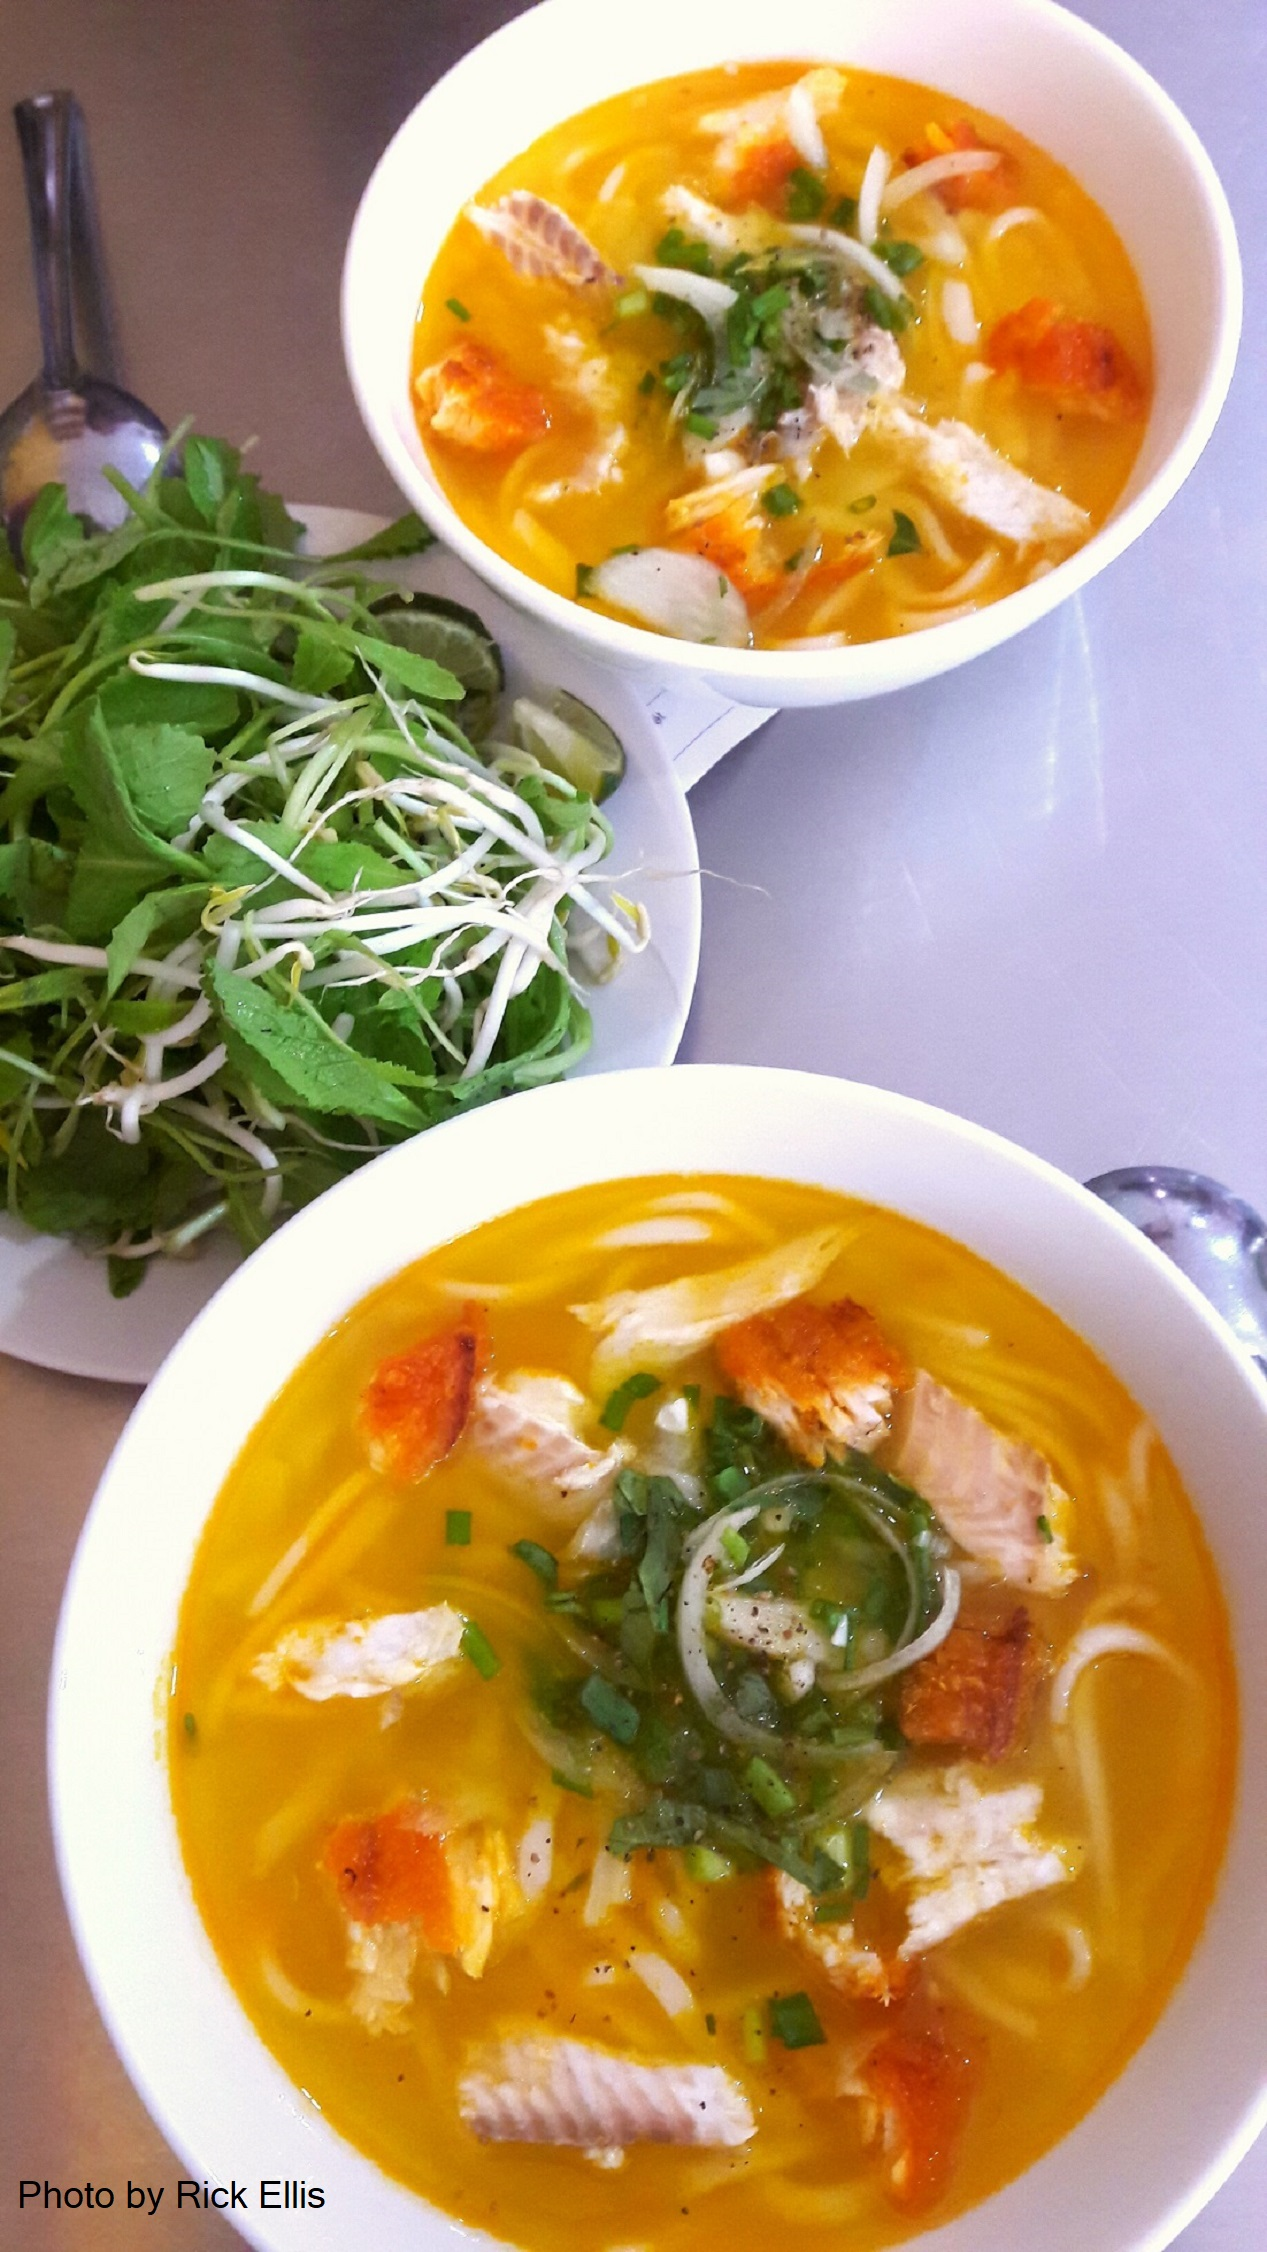 Two bowls of 'bánh canh cá lóc' (fish noodle soup) served at Chú La in Da Lat City, Lam Dong Province, Vietnam. Photo: Rick Ellis